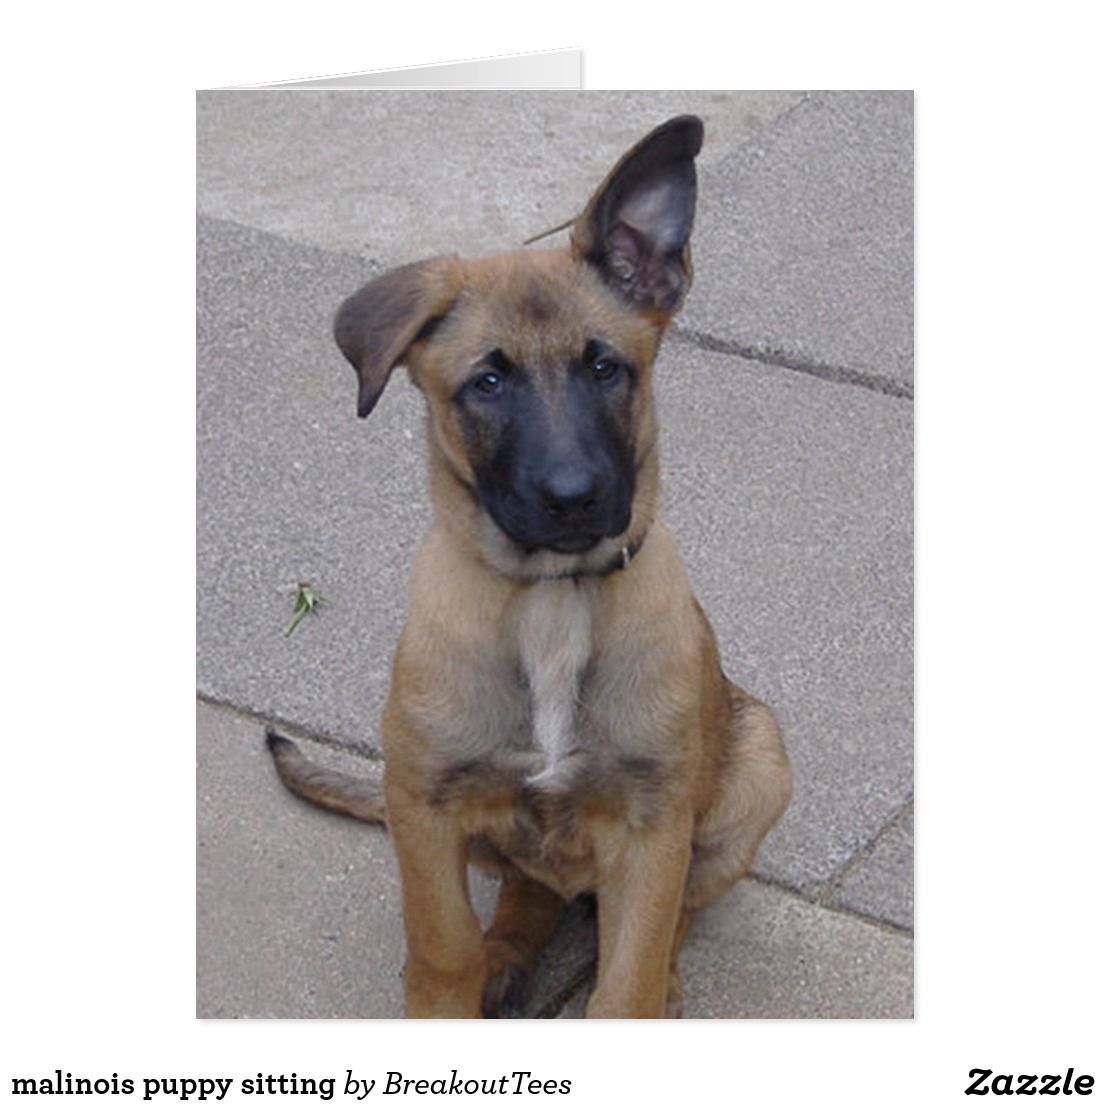 Malinois Puppy Sitting Zazzle Com Malinois Puppies Belgian Malinois Puppies Malinois Puppies For Sale